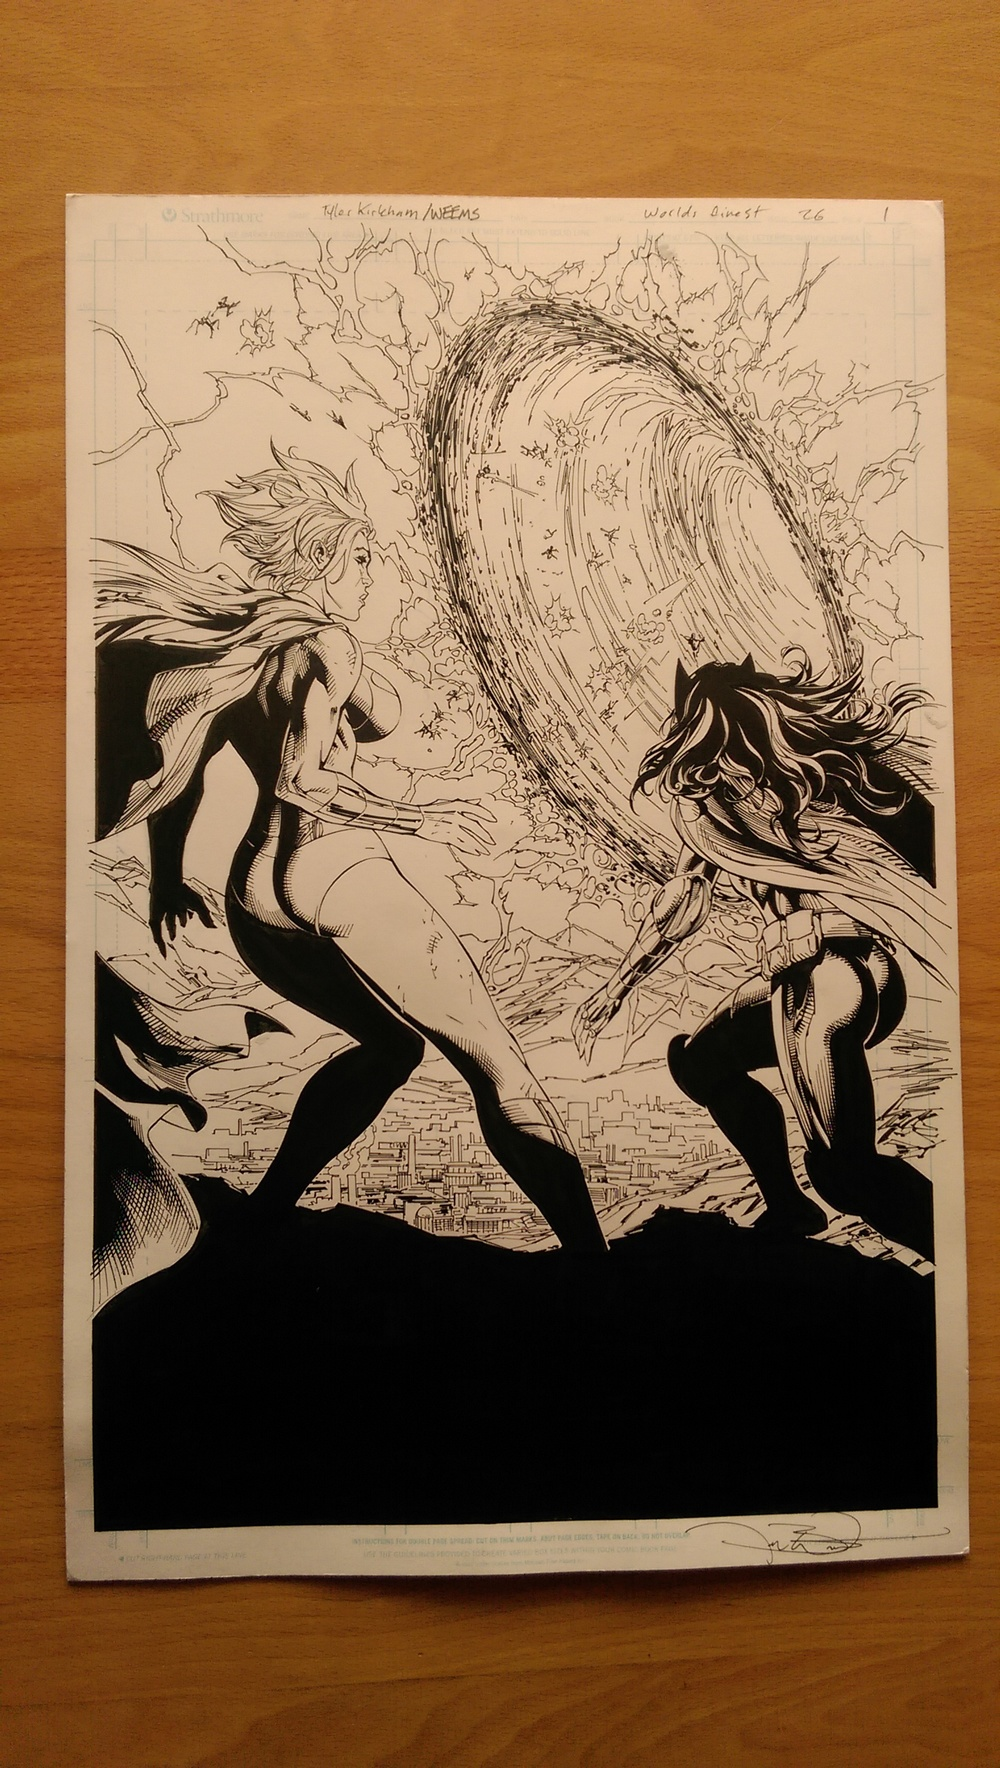 Original page from World's Finest, issue #26, Page 1. Drawn by Tyler Kirkham, inked by Joe Weems